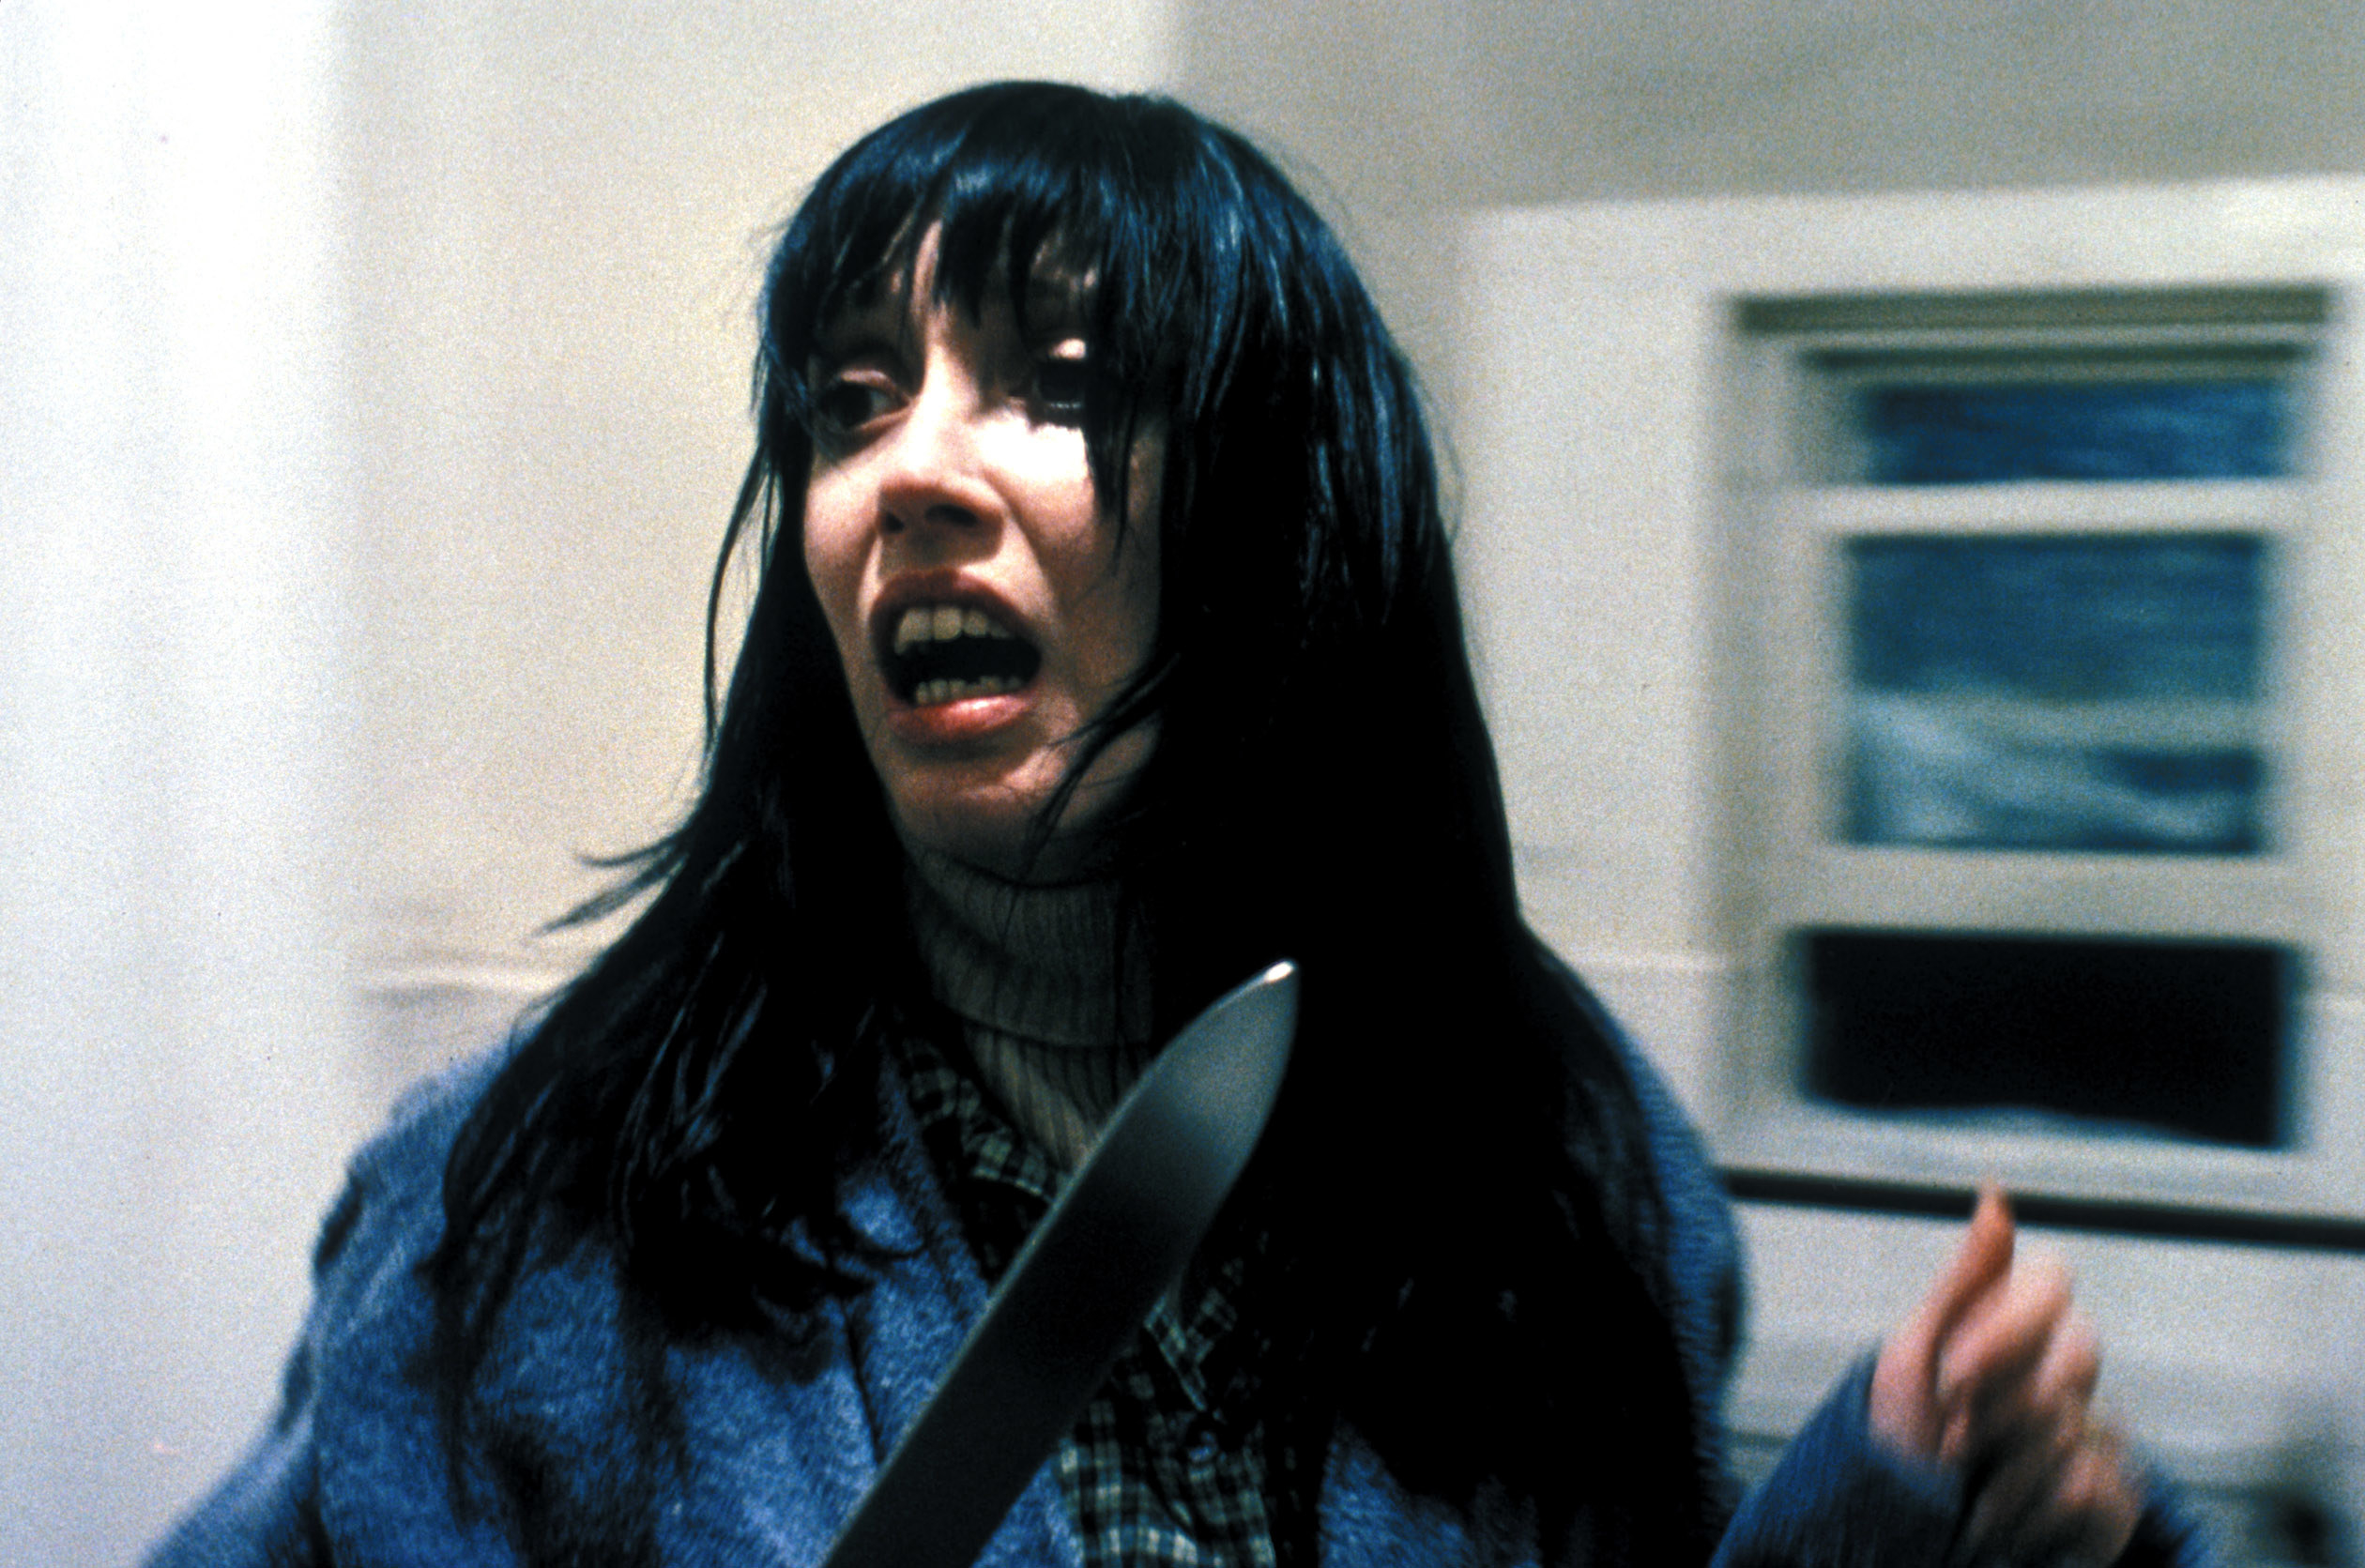 Shelly with a knife looking scared in the film